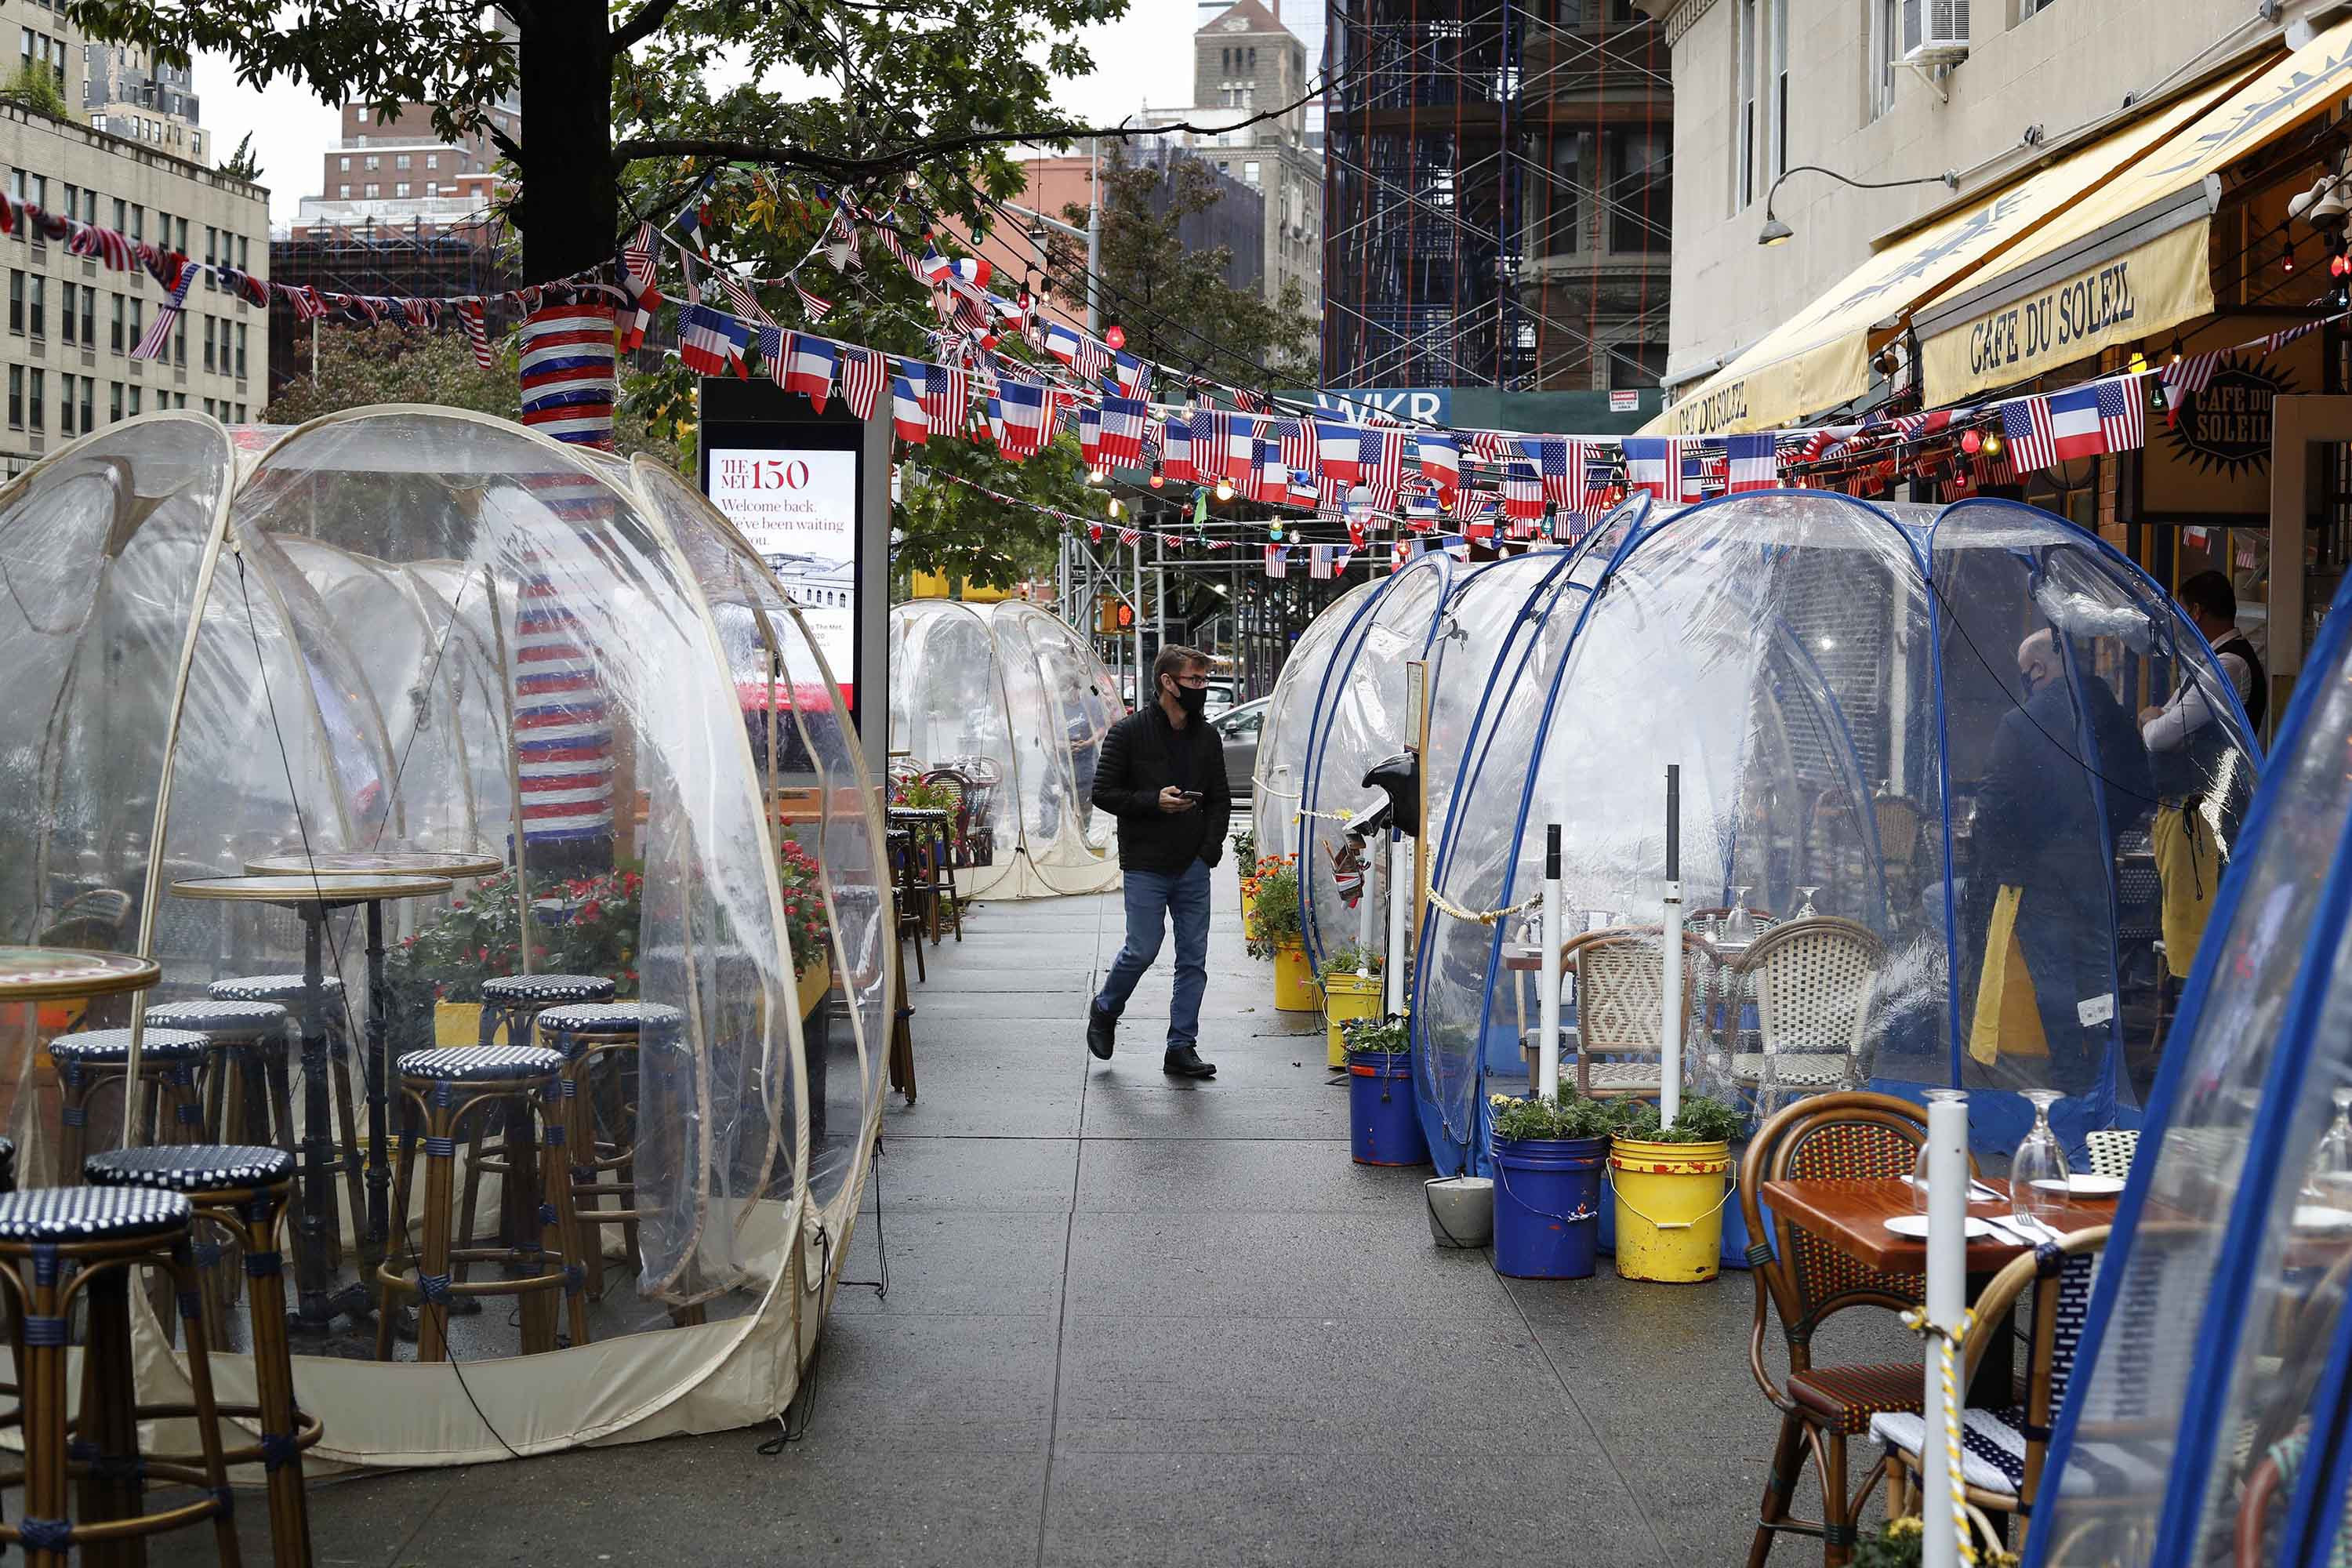 Transparent social distancing bubble tents are set up for diners outside a restaurant in Manhattan, New York, on October 13.